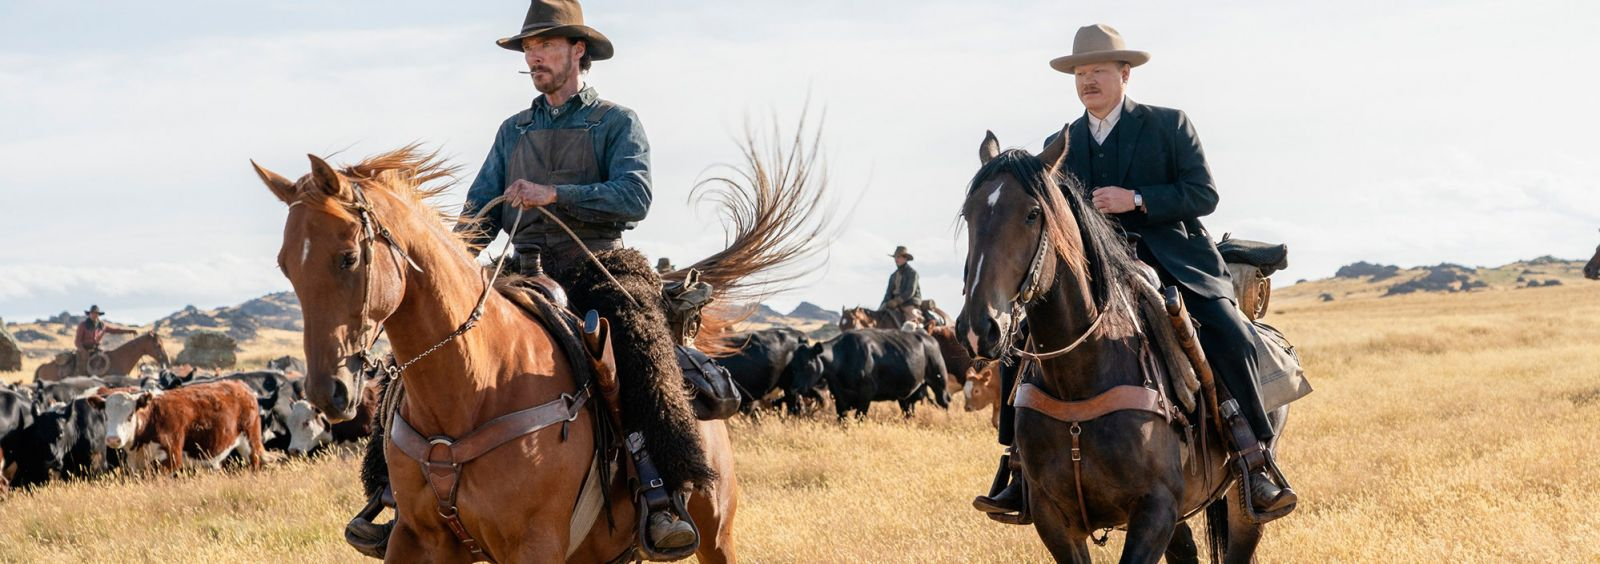 still shot from The Power of the Dog with two men on horseback in a field